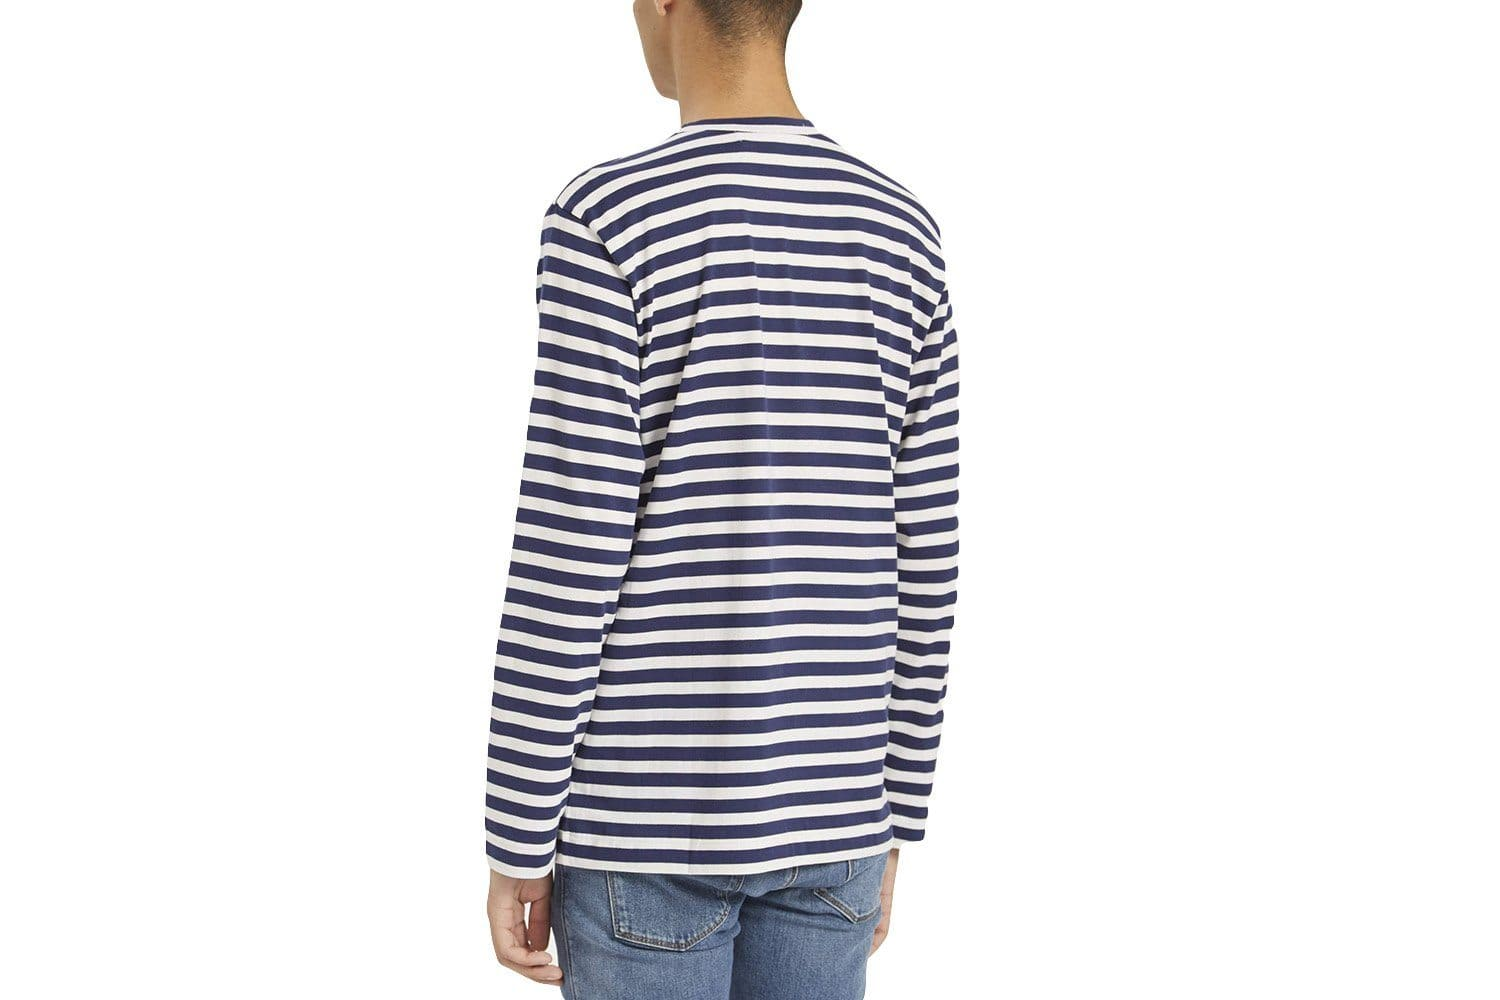 NAVY STRIPE GREEN STRETCH HEART MENS SOFTGOODS COMME DES GARCONS